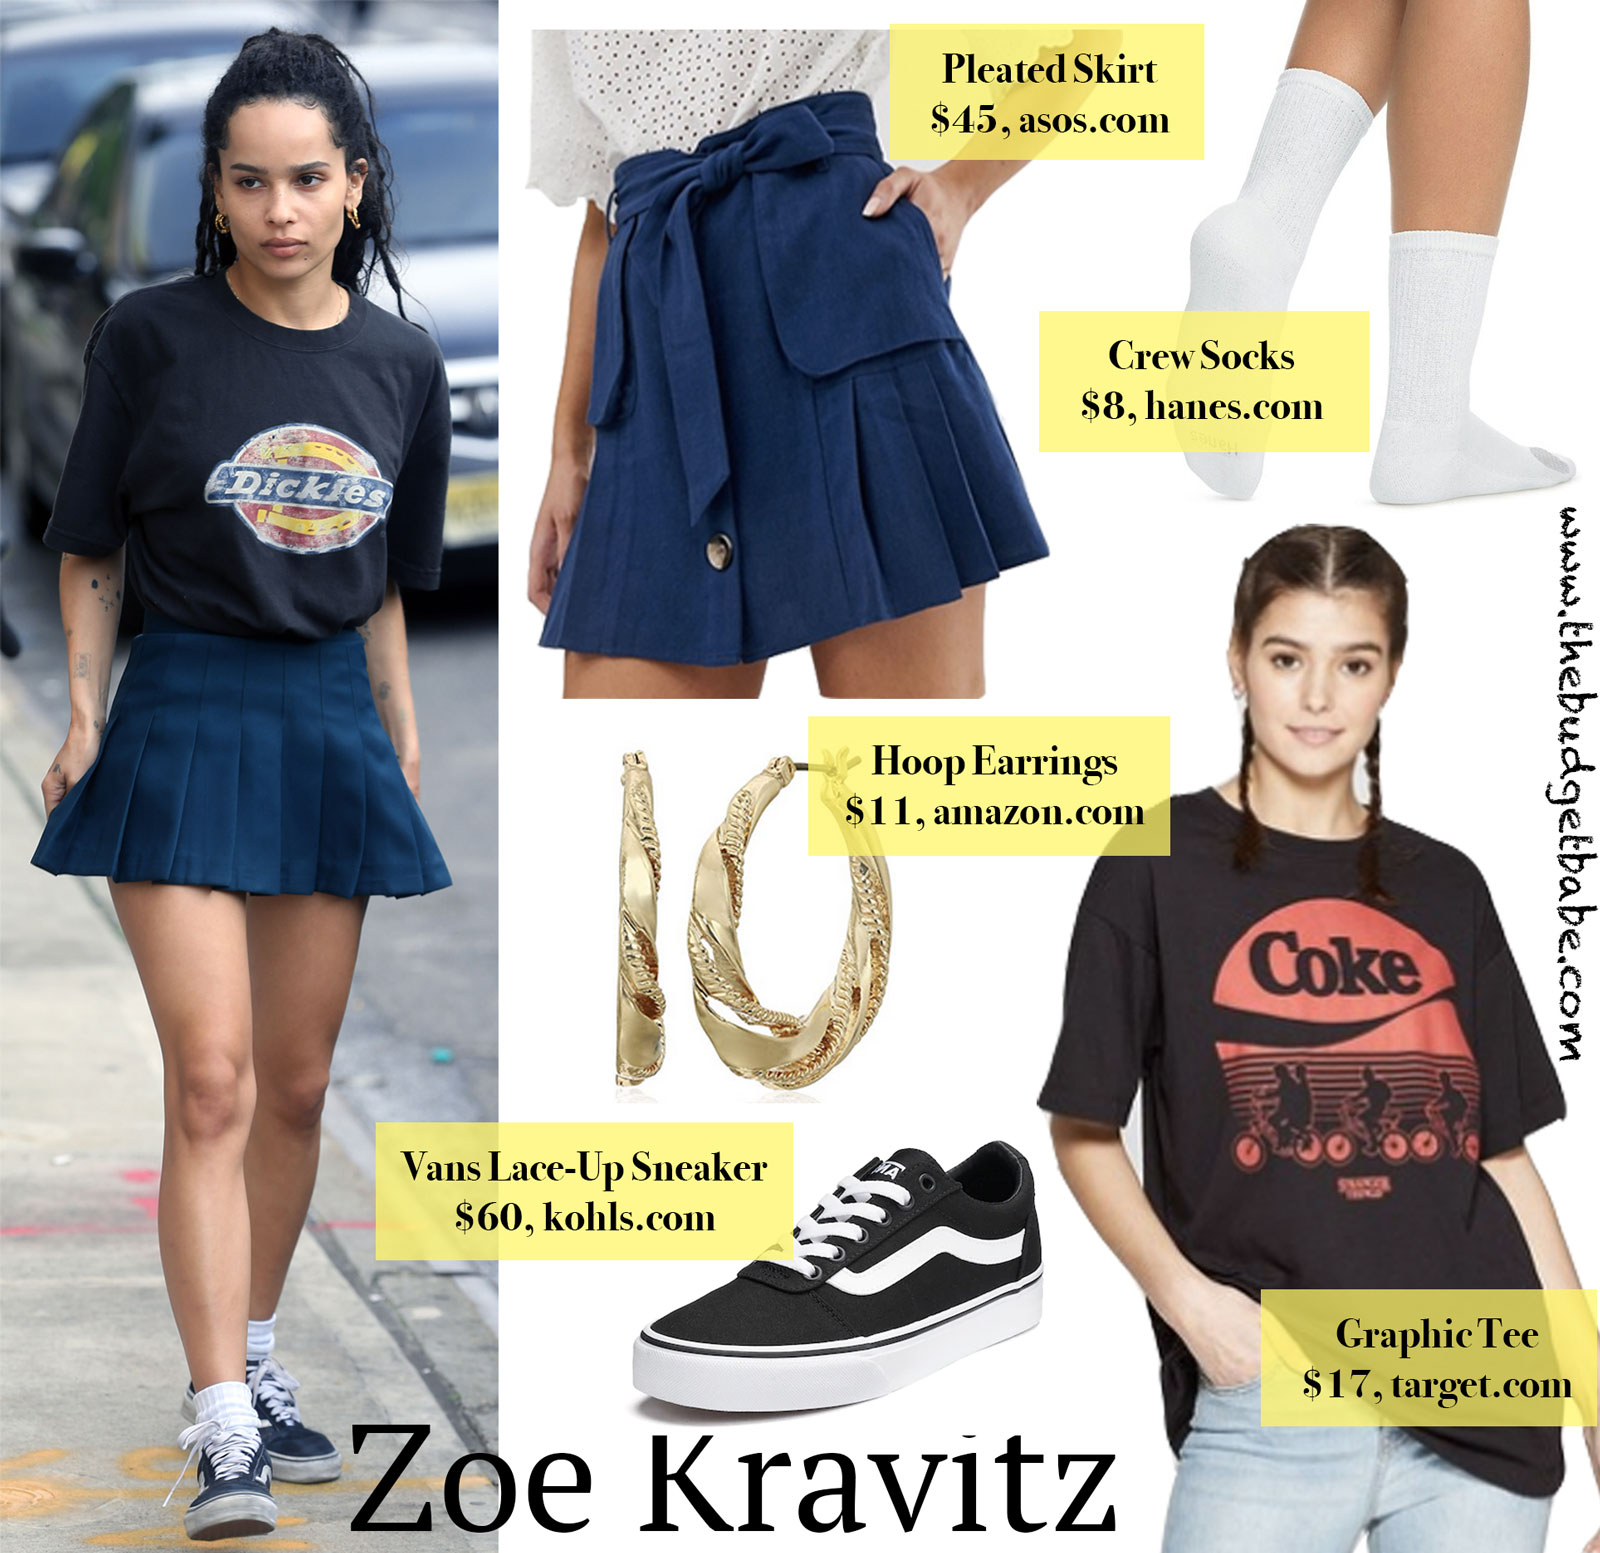 Zoe Kravitz Pleated Skirt Graphic Tee